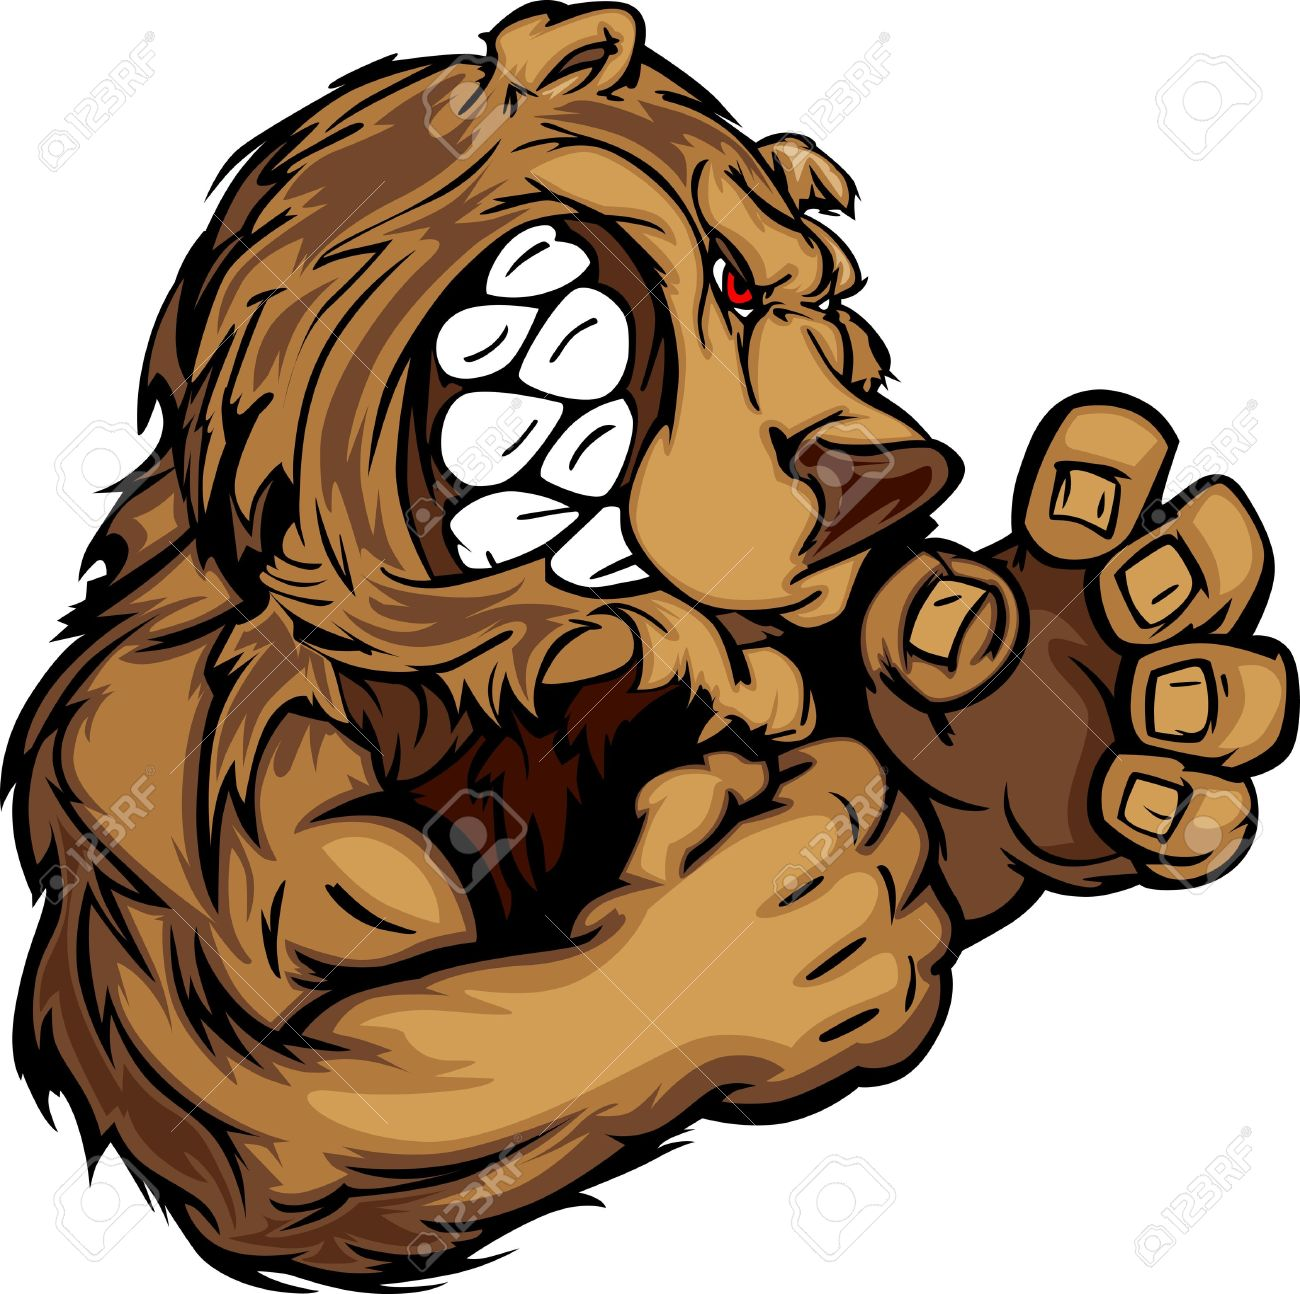 Grizzly Family clipart #19, Download drawings